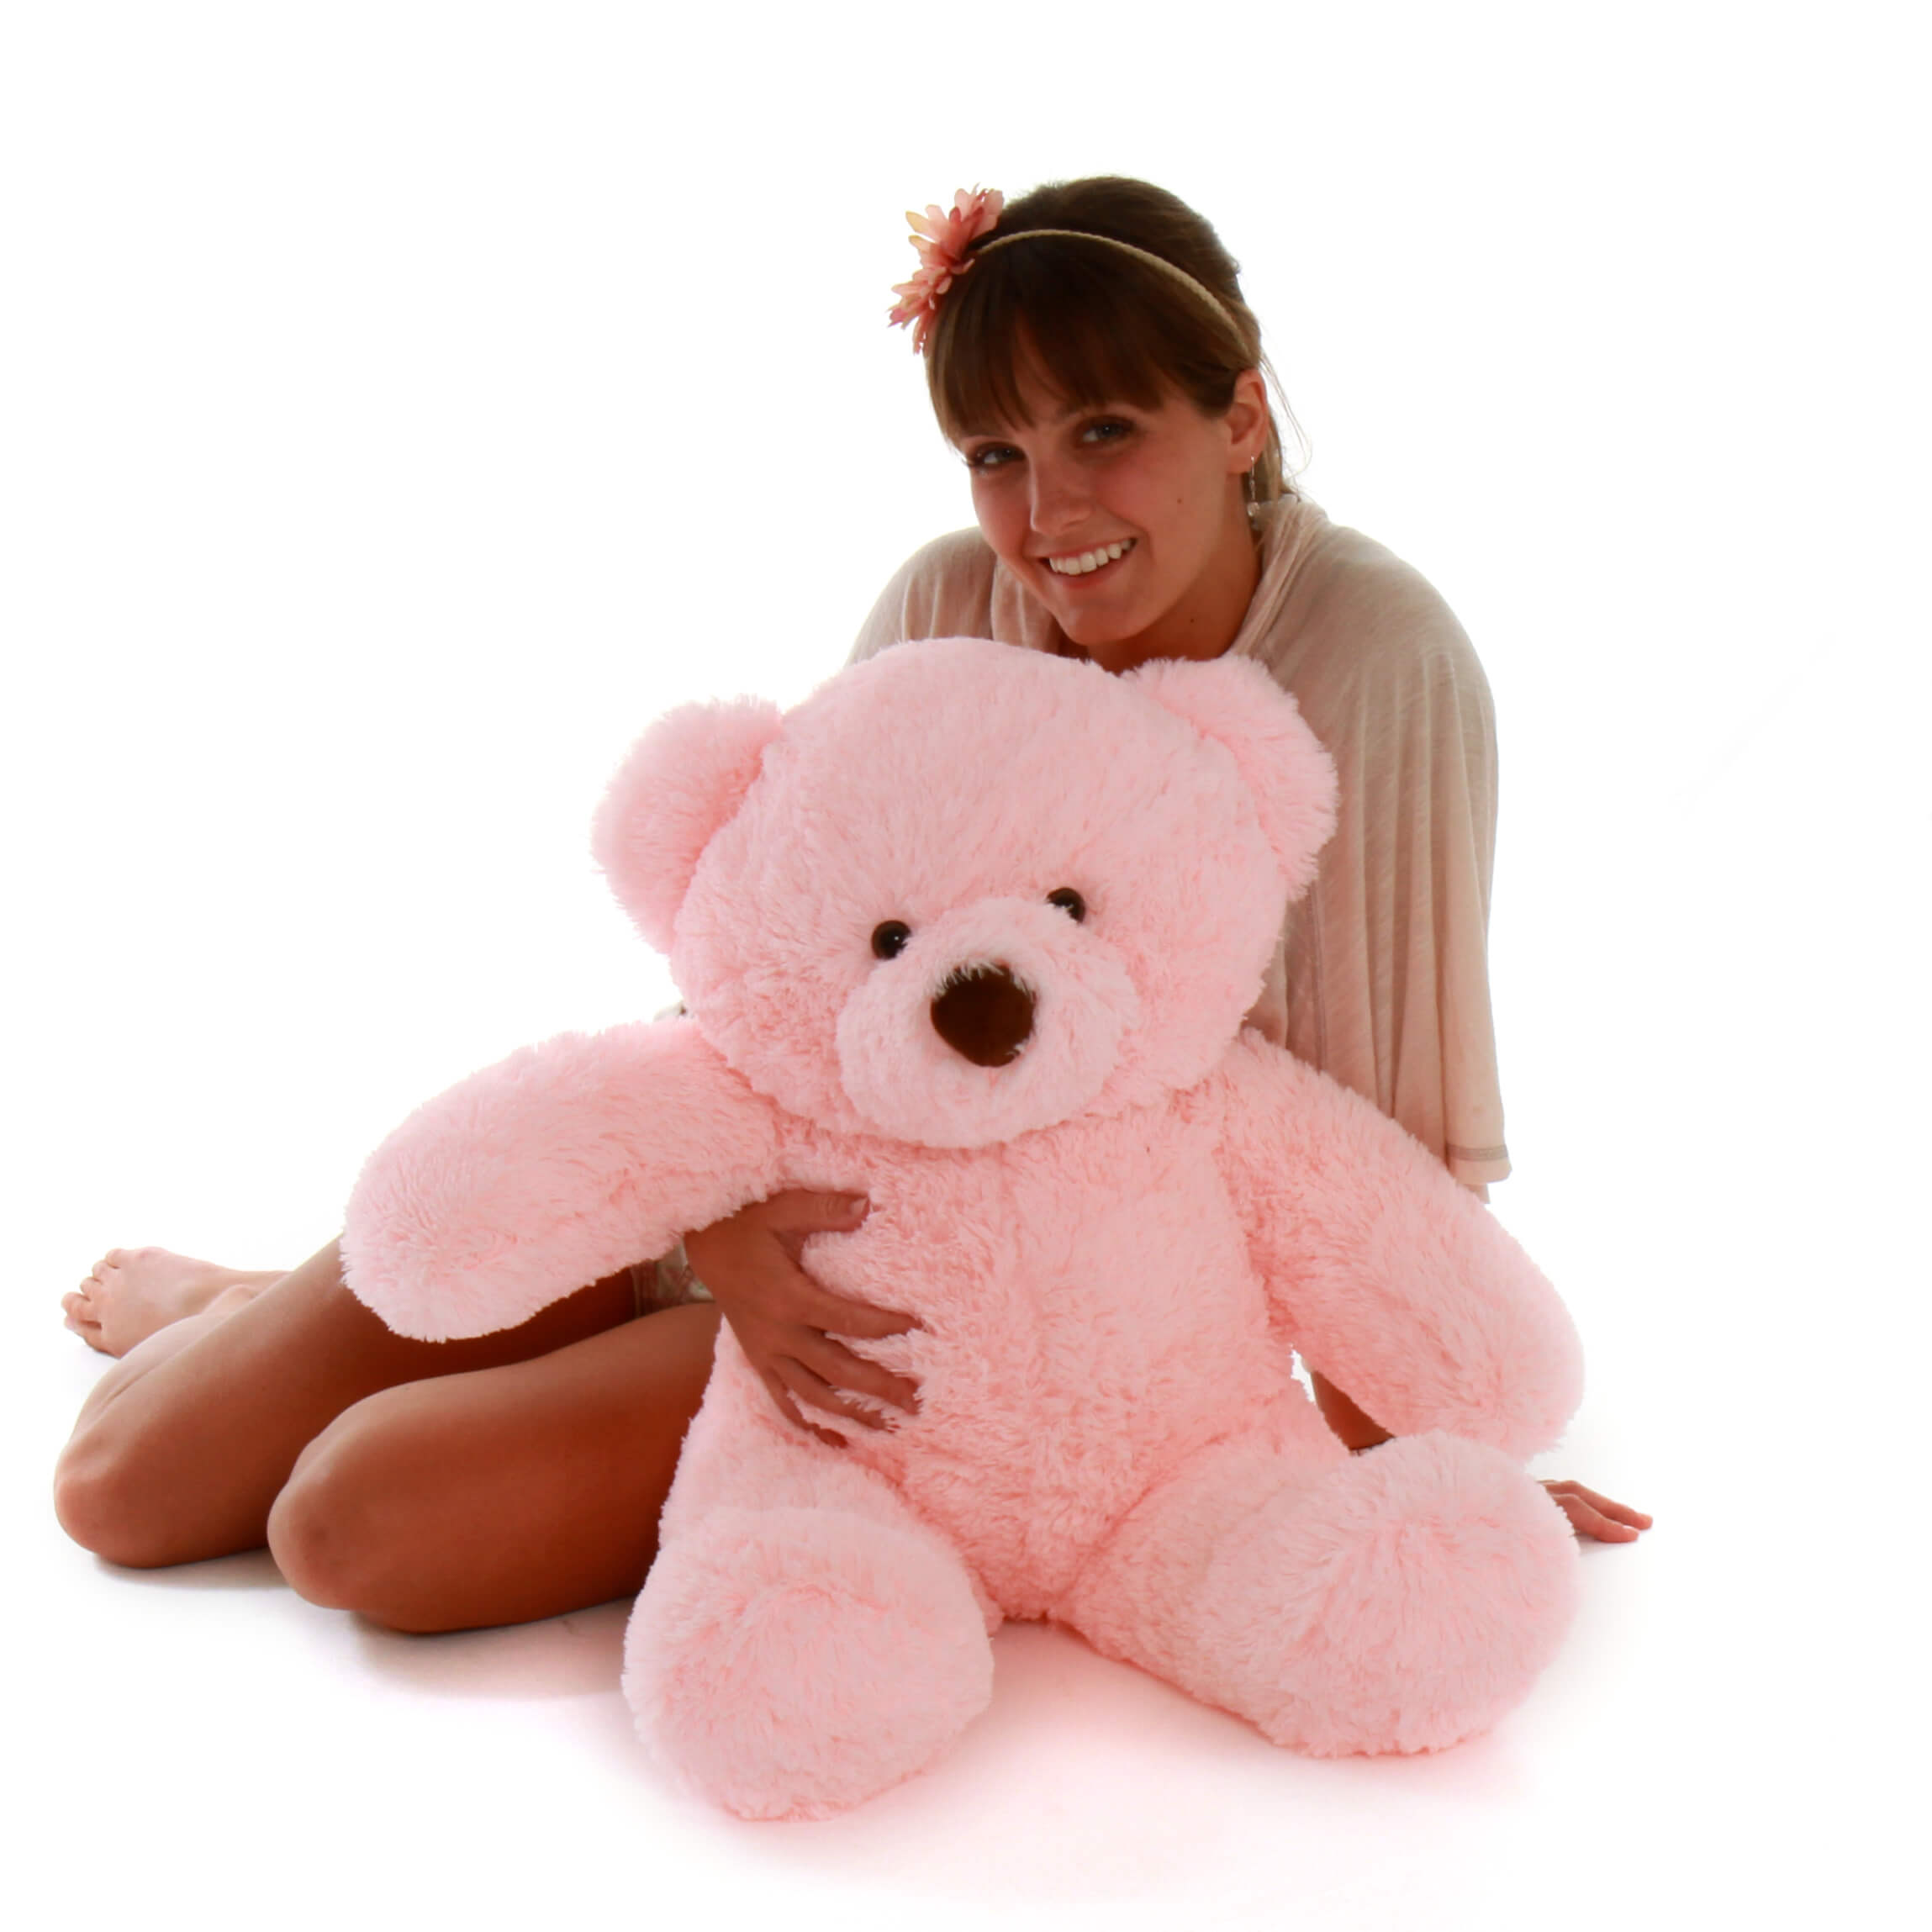 gigi-chubs-light-rose-30in-us-made-giant-teddy-super-adorable-1.jpg